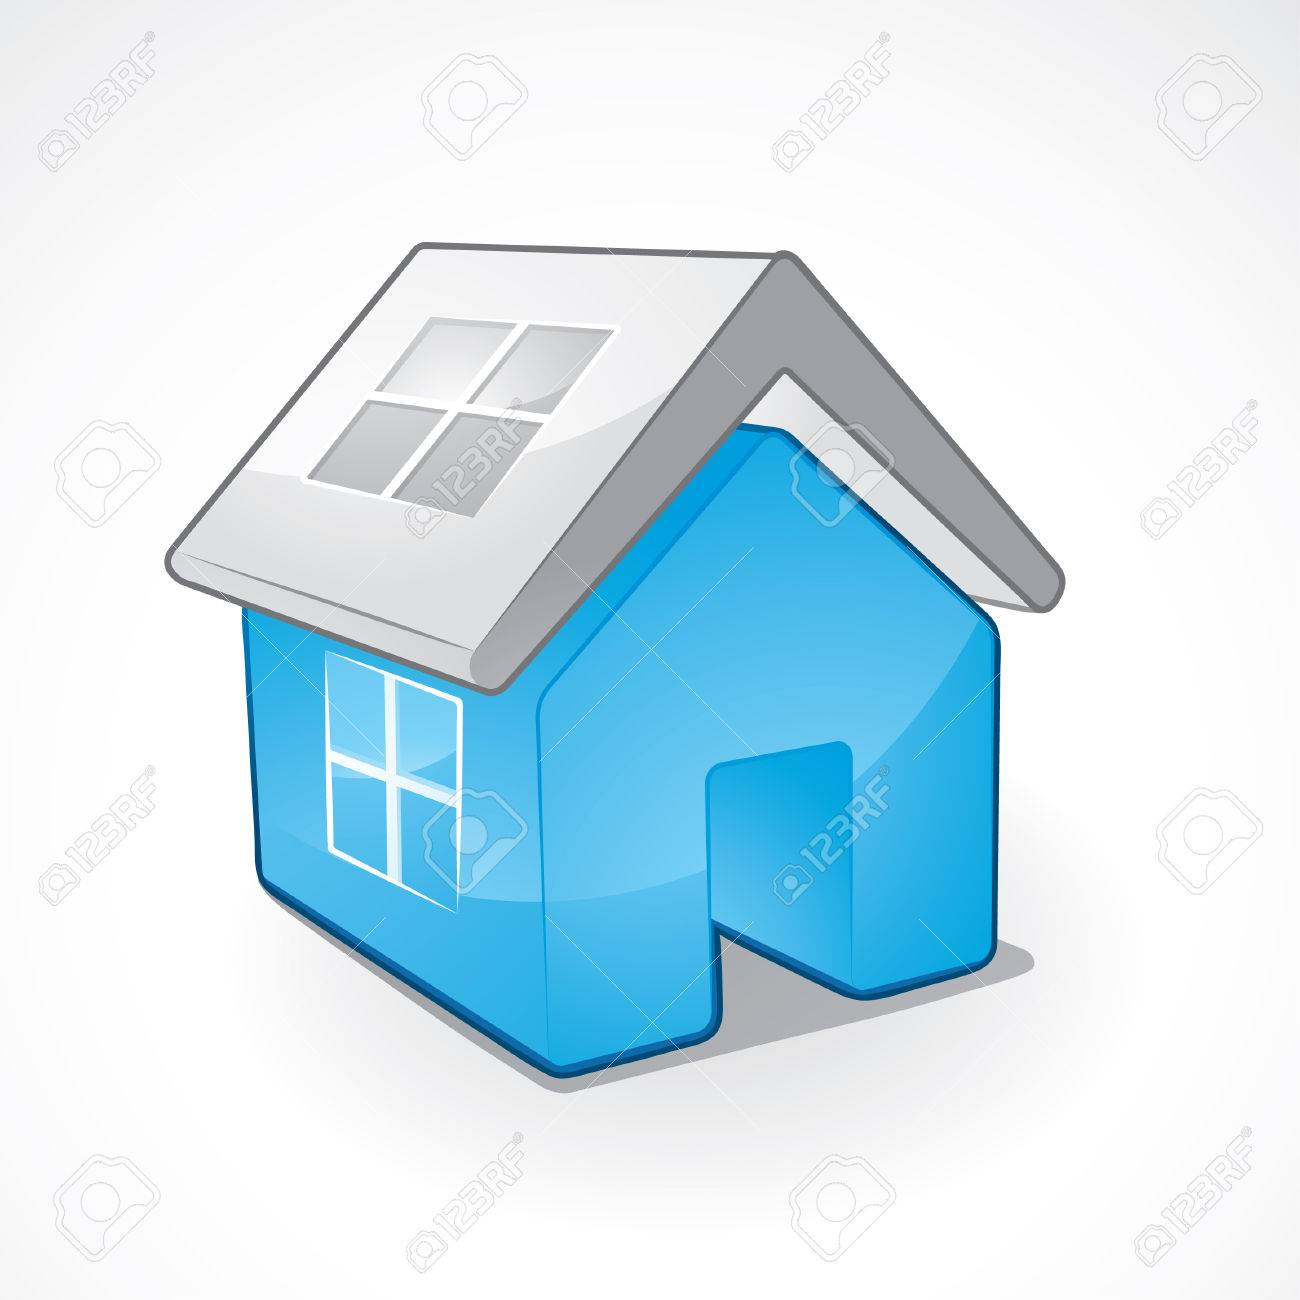 Internet home symbol Stock Vector - 6199103